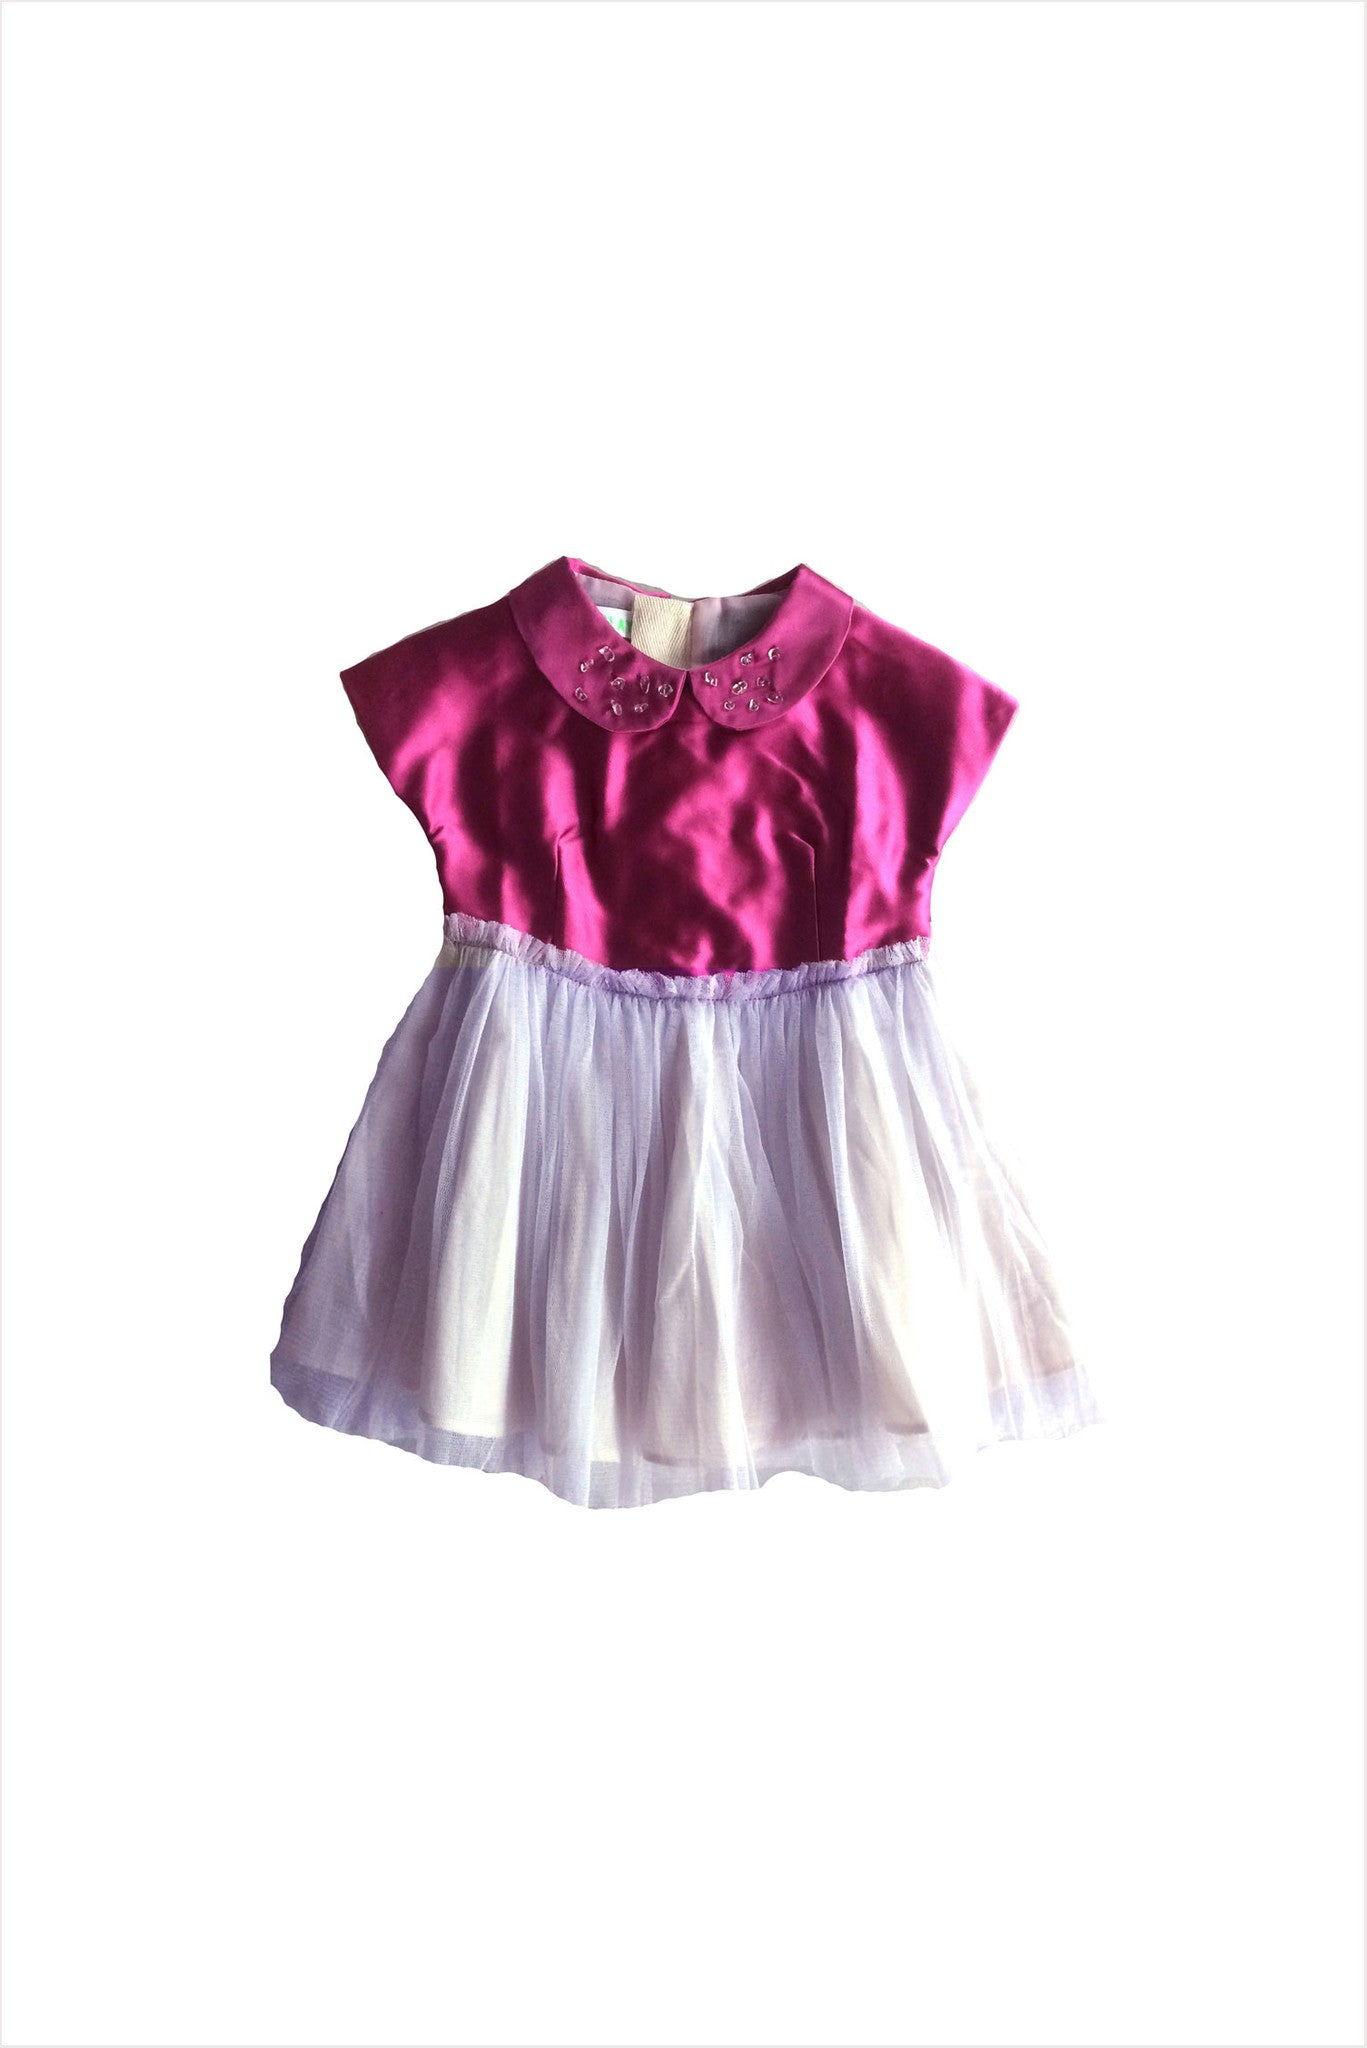 Wovenplay Cherry Tutu Dress